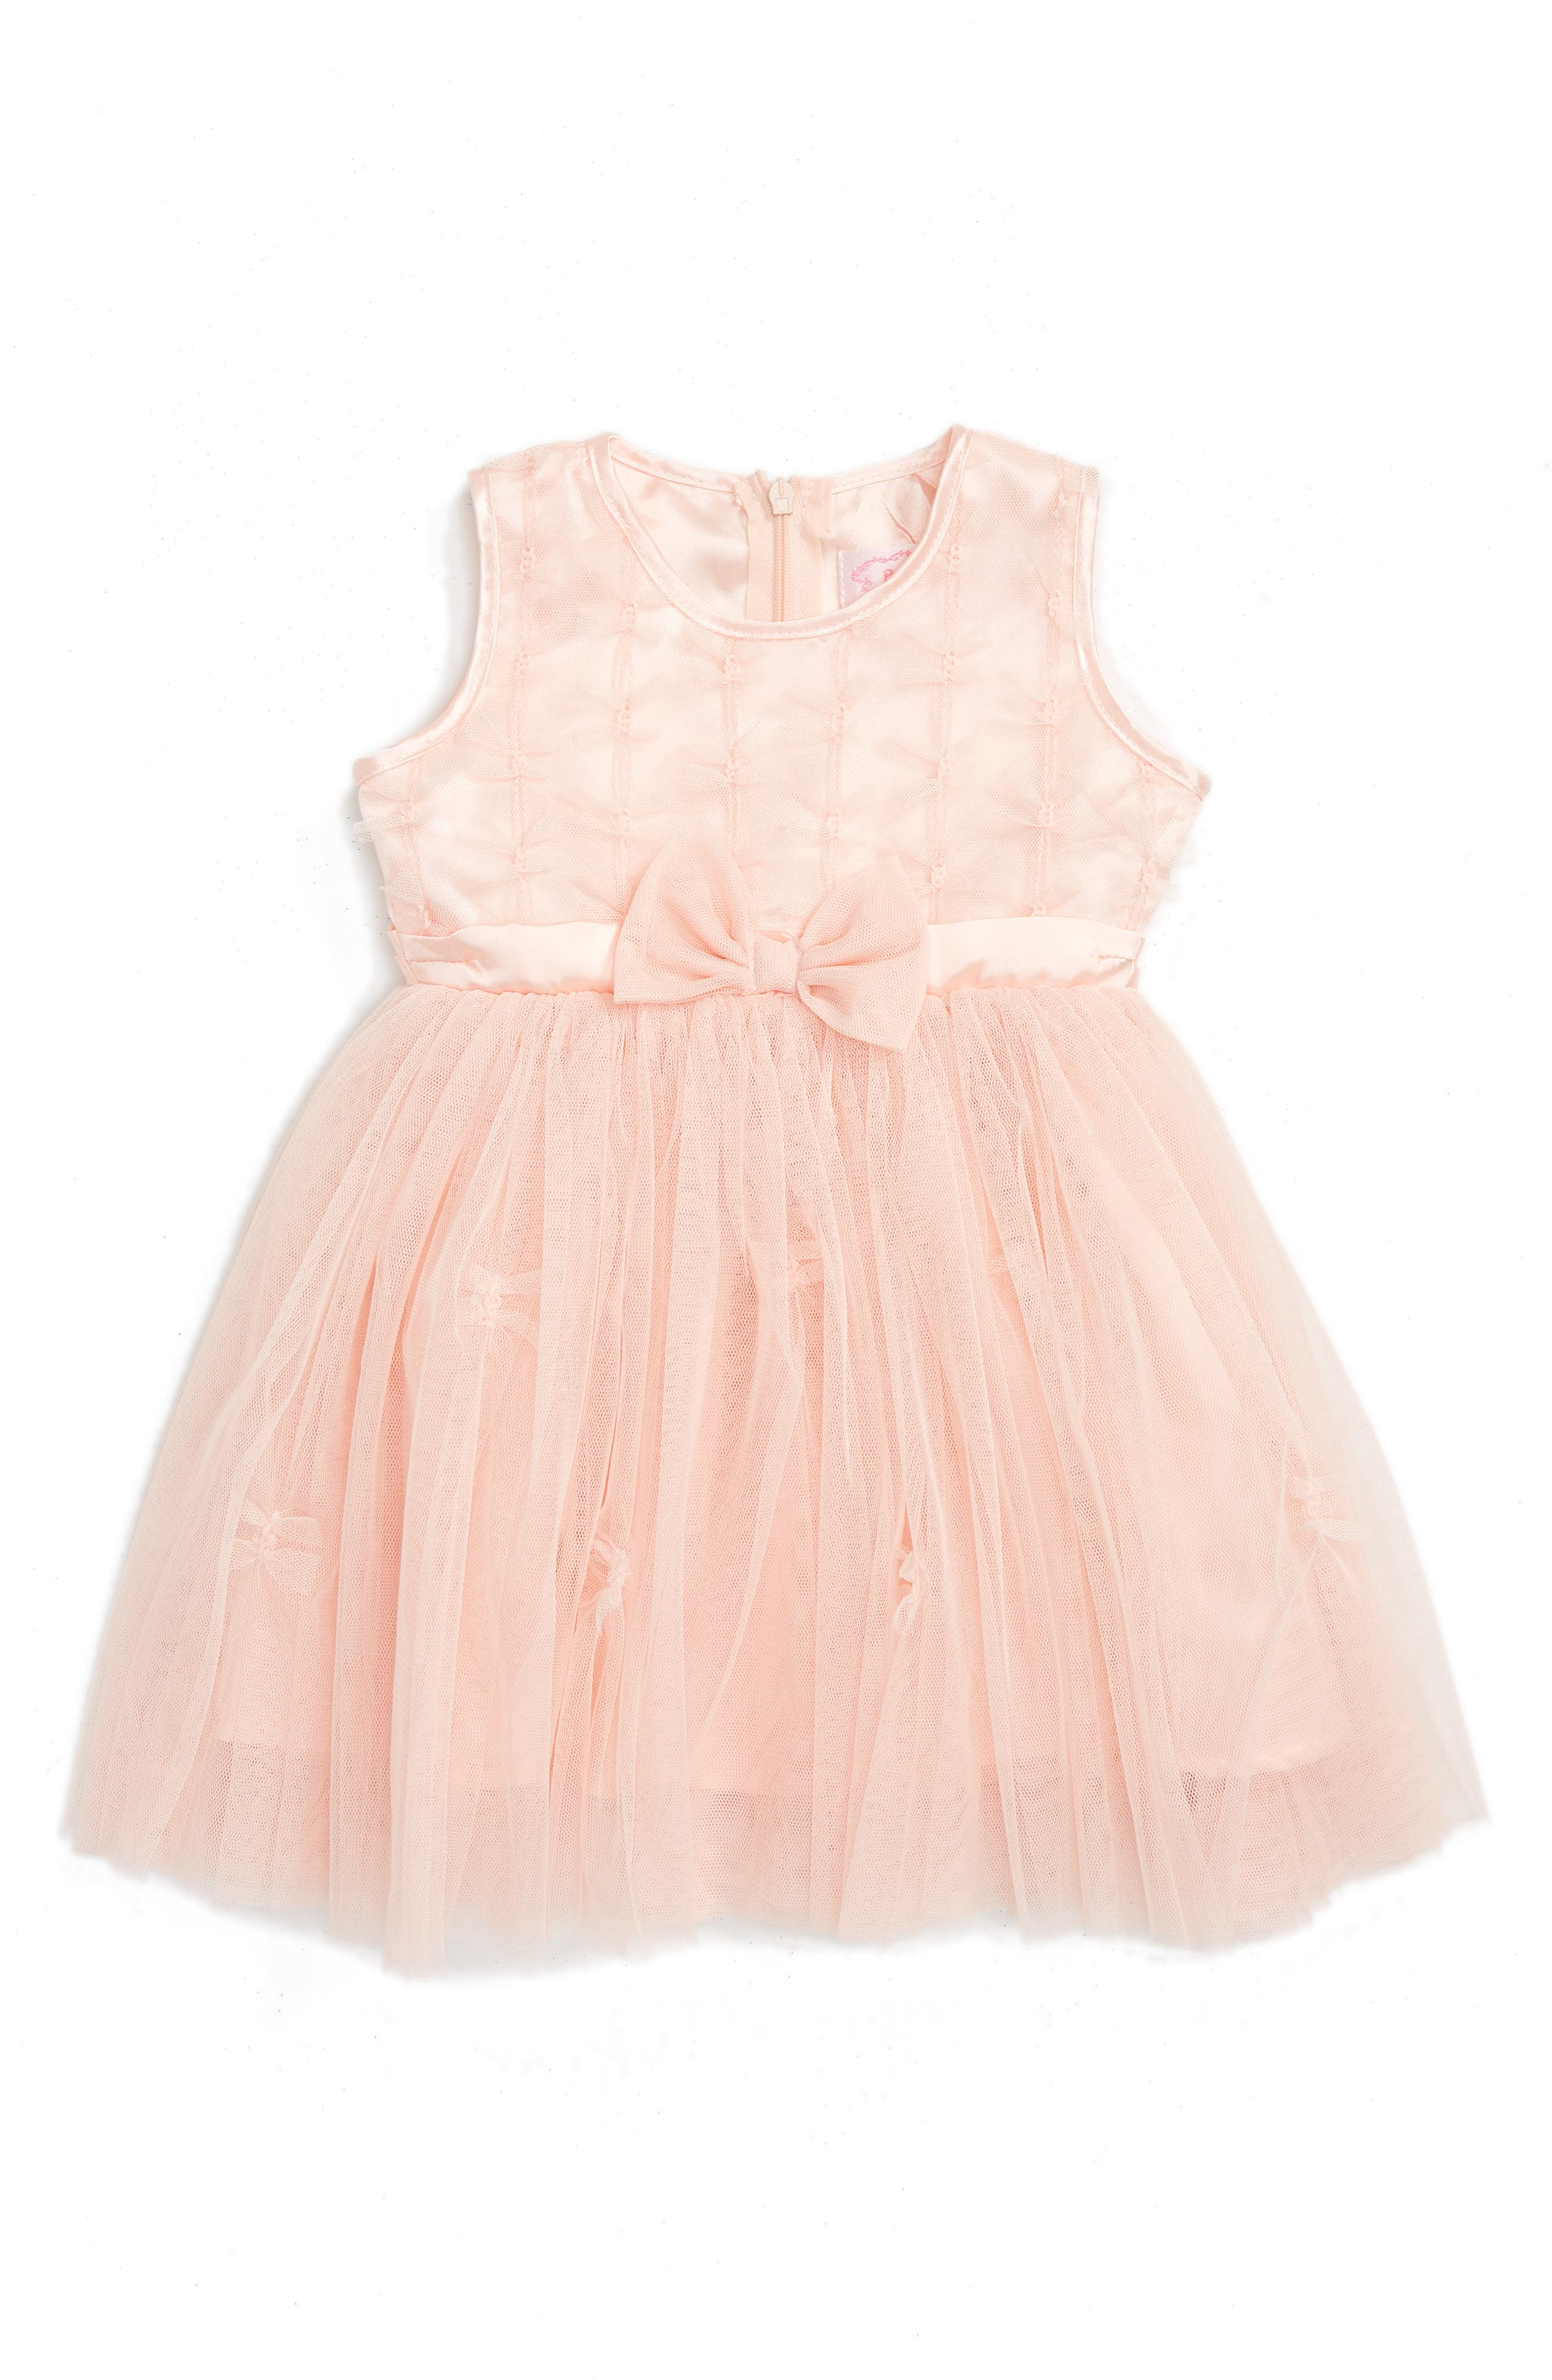 Sleeveless Tulle Dress,                             Main thumbnail 1, color,                             PEACH